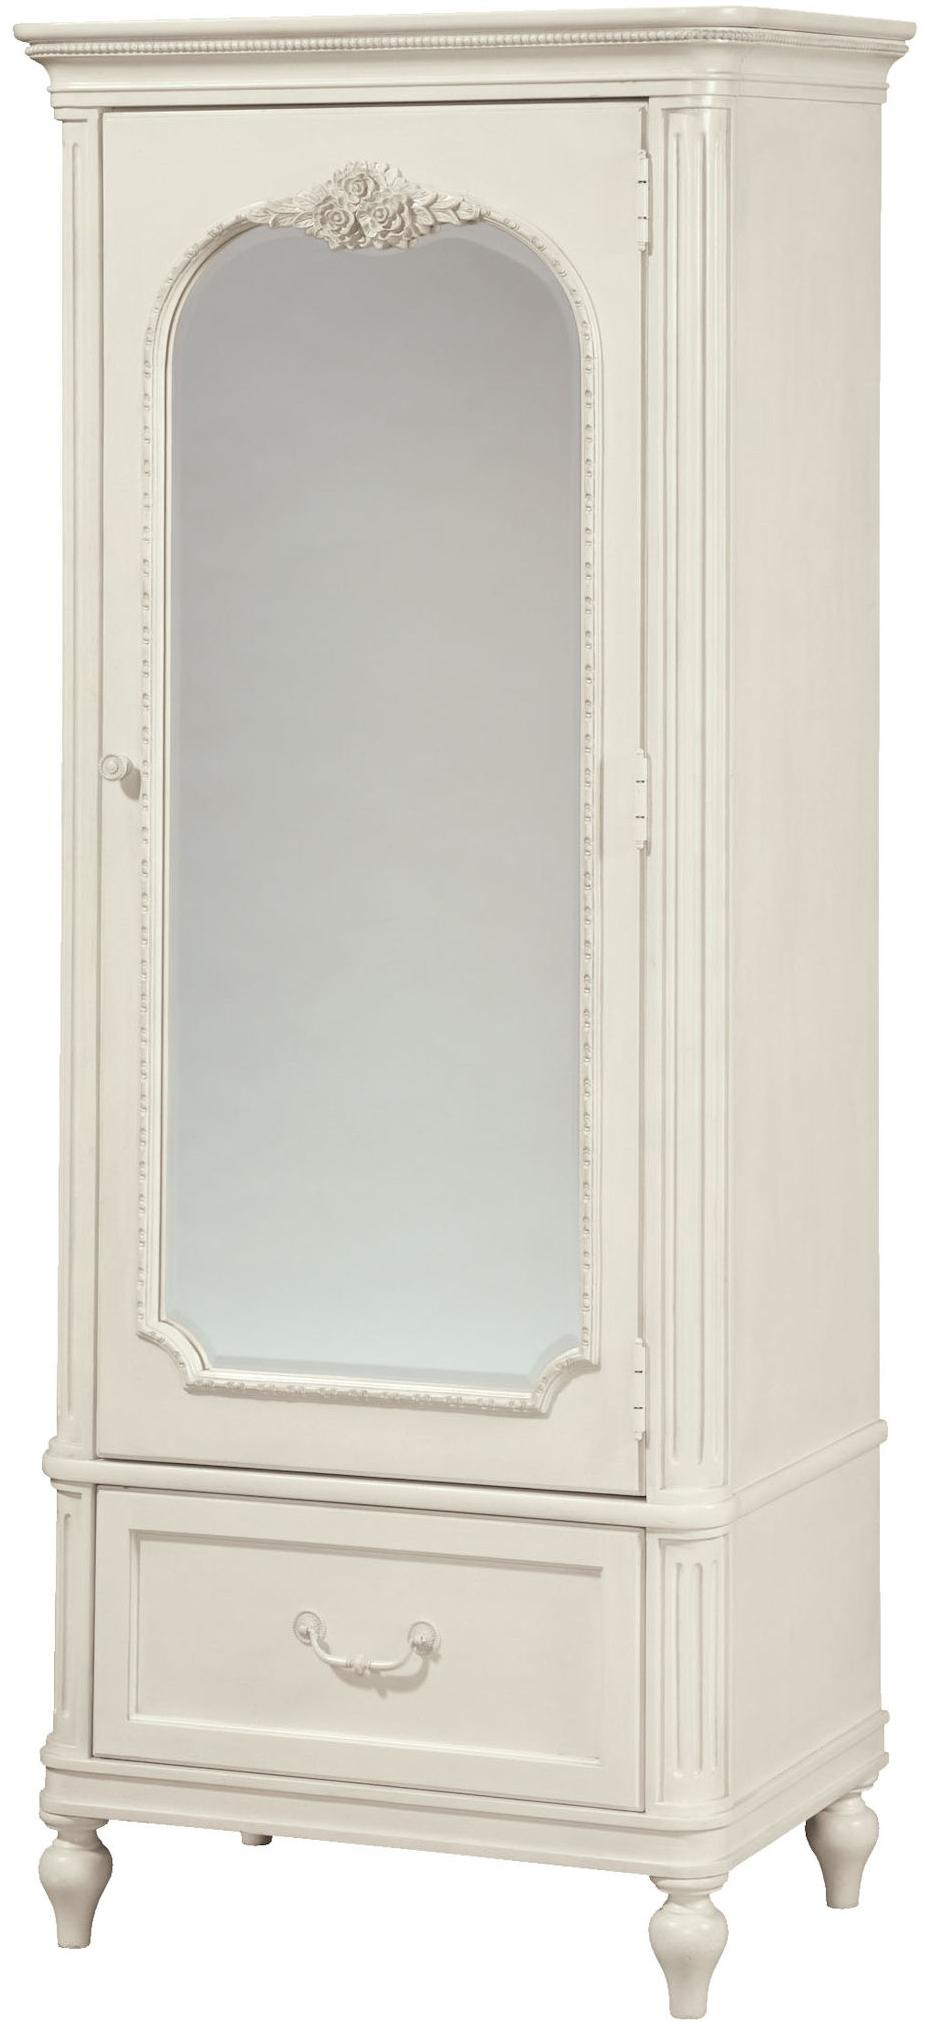 Morris Home Furnishings Greenville Greenville Armoire - Item Number: 136A014